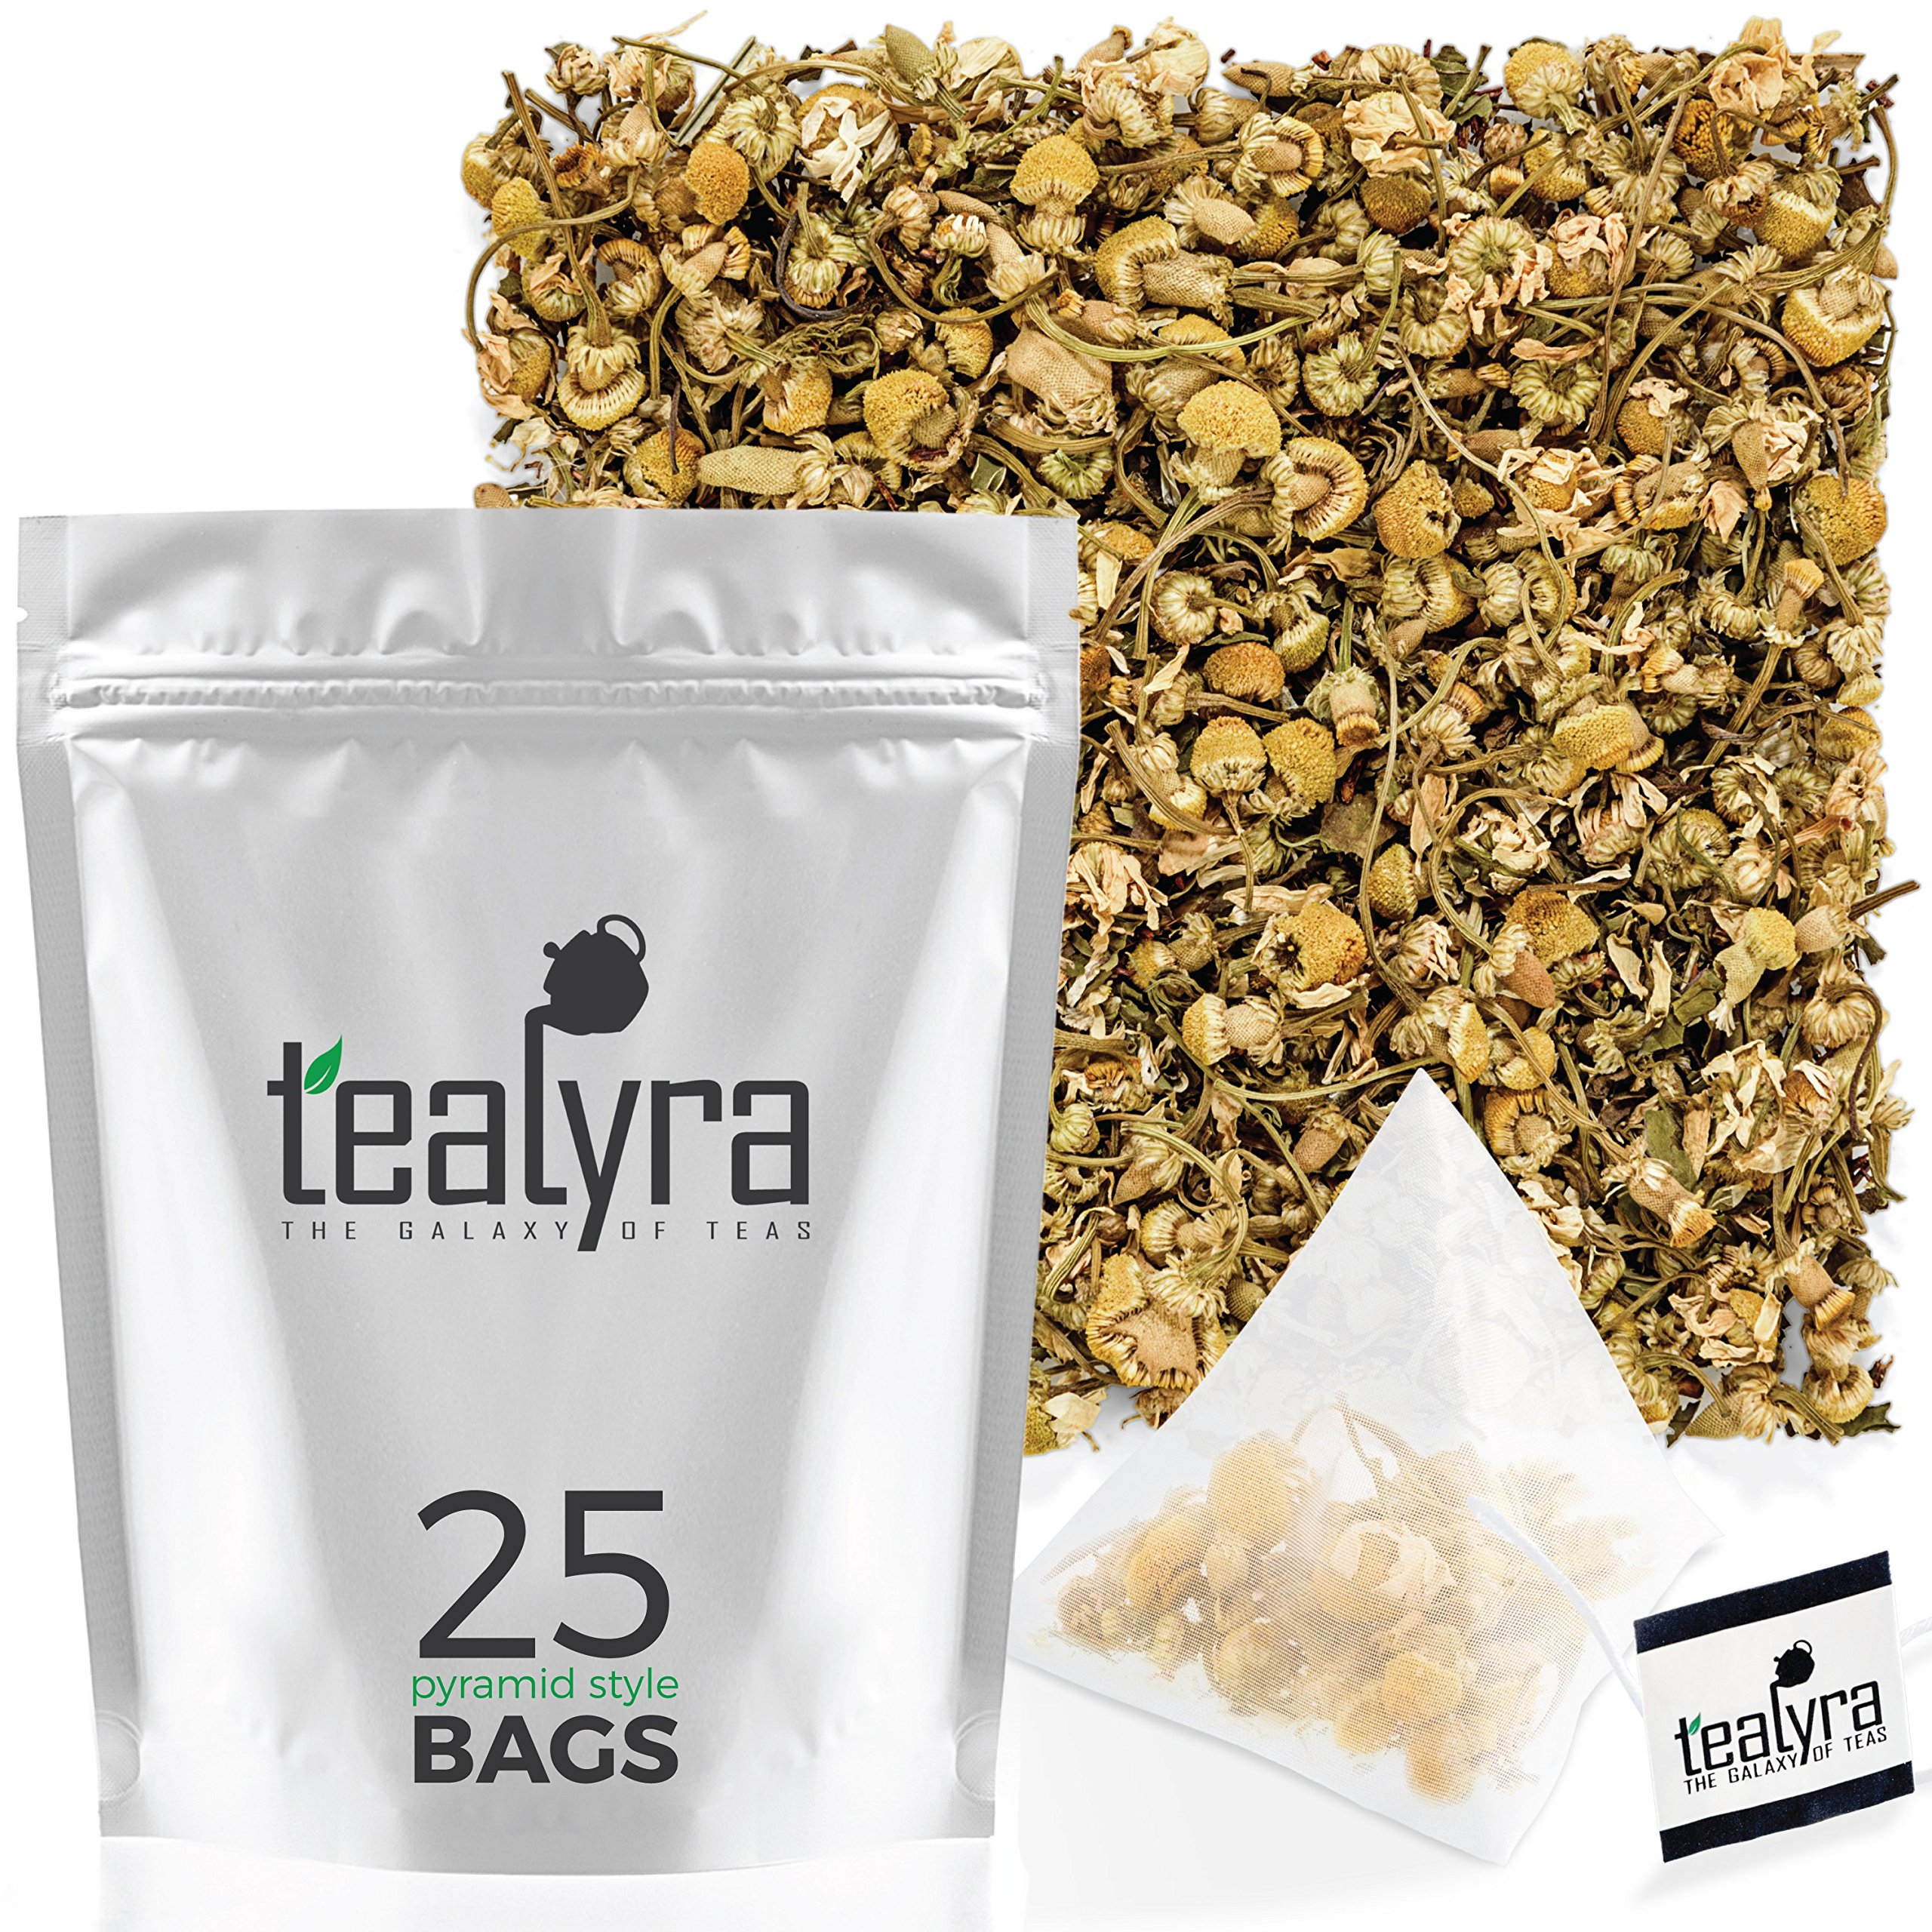 Tealyra - Lovely Night - 25 Bags - Chamomile Rooibos Mint - Calming & Relaxing - Herbal Loose Leaf Tea - Antioxidants Rich - All Natural Ingredients - Caffeine-Free - Pyramids Style Sachets by Tealyra